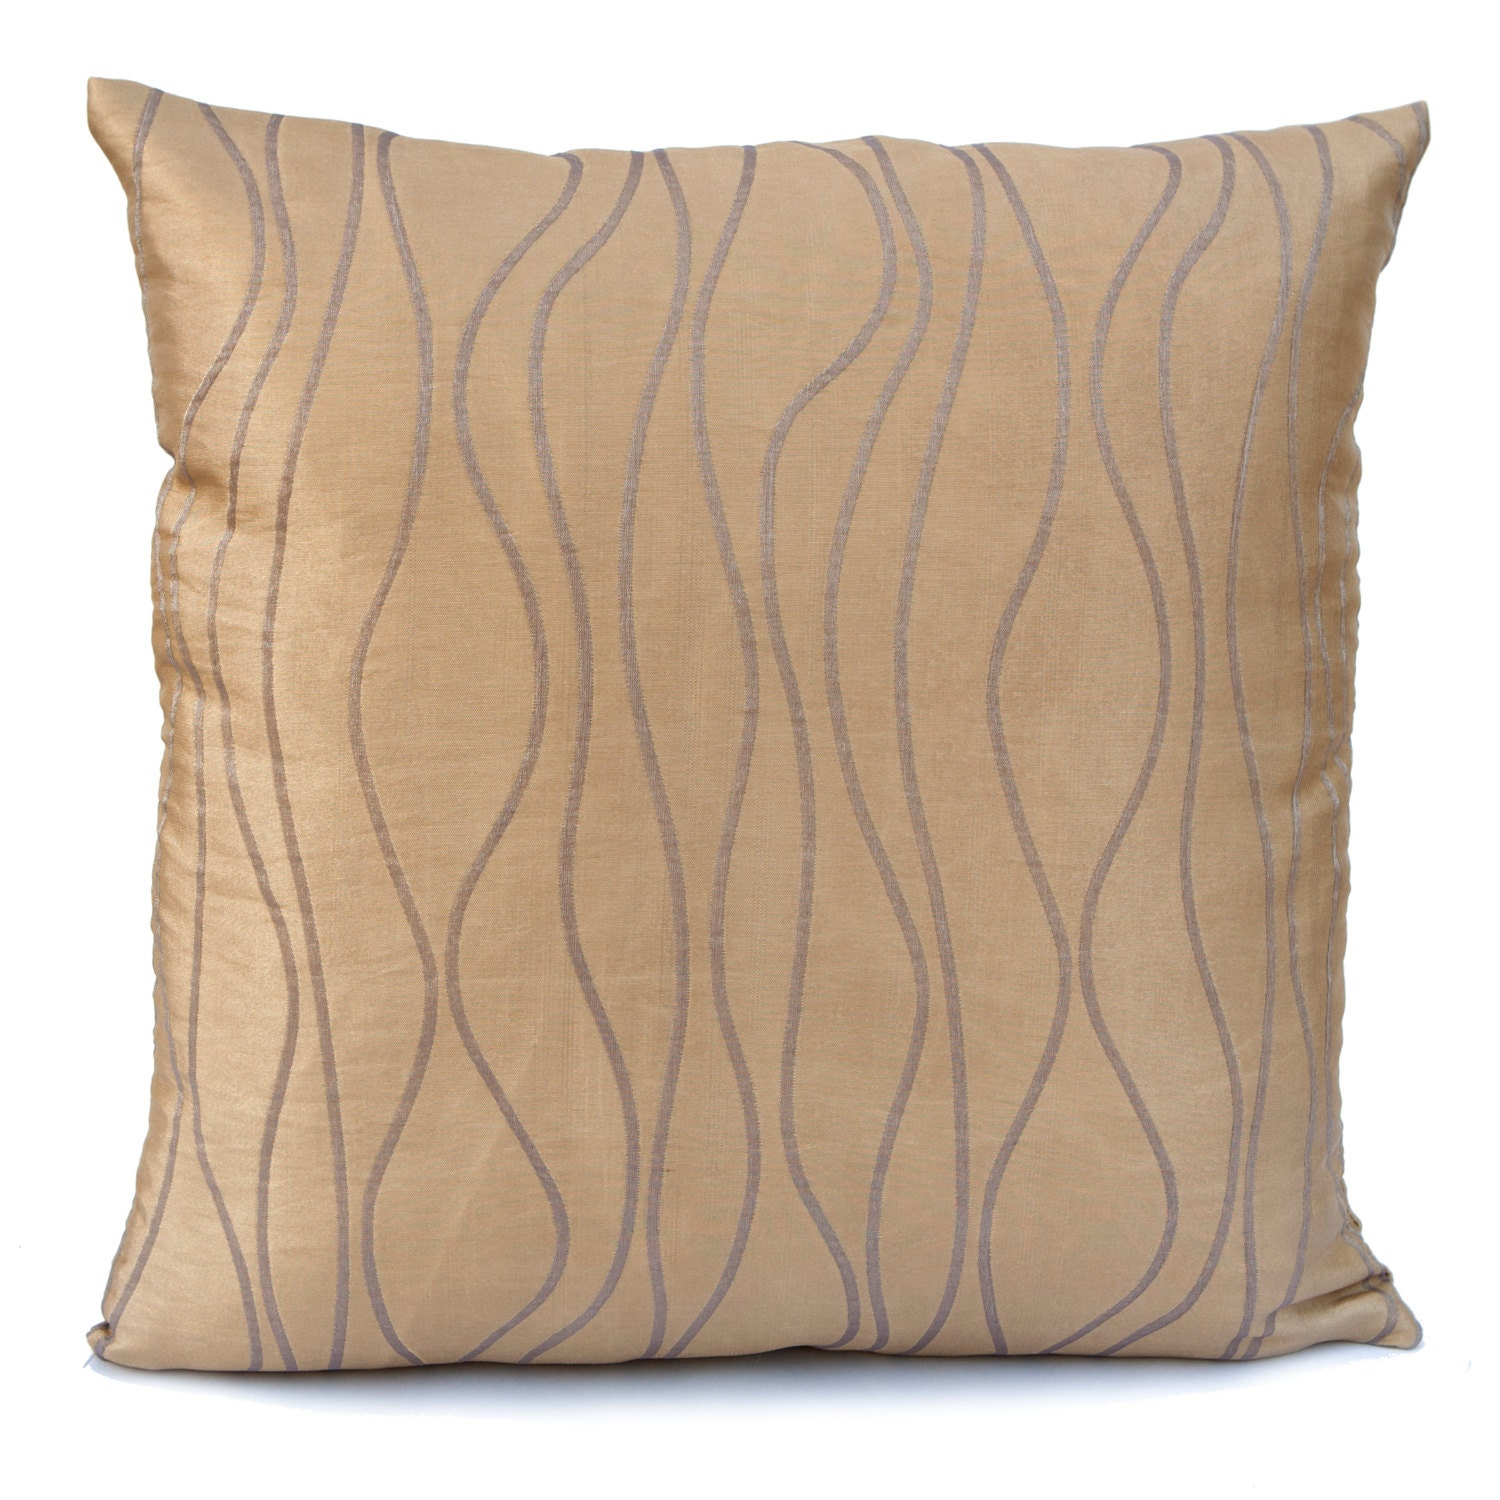 Light Beige Pillow Throw Pillow Cover Decorative Pillow